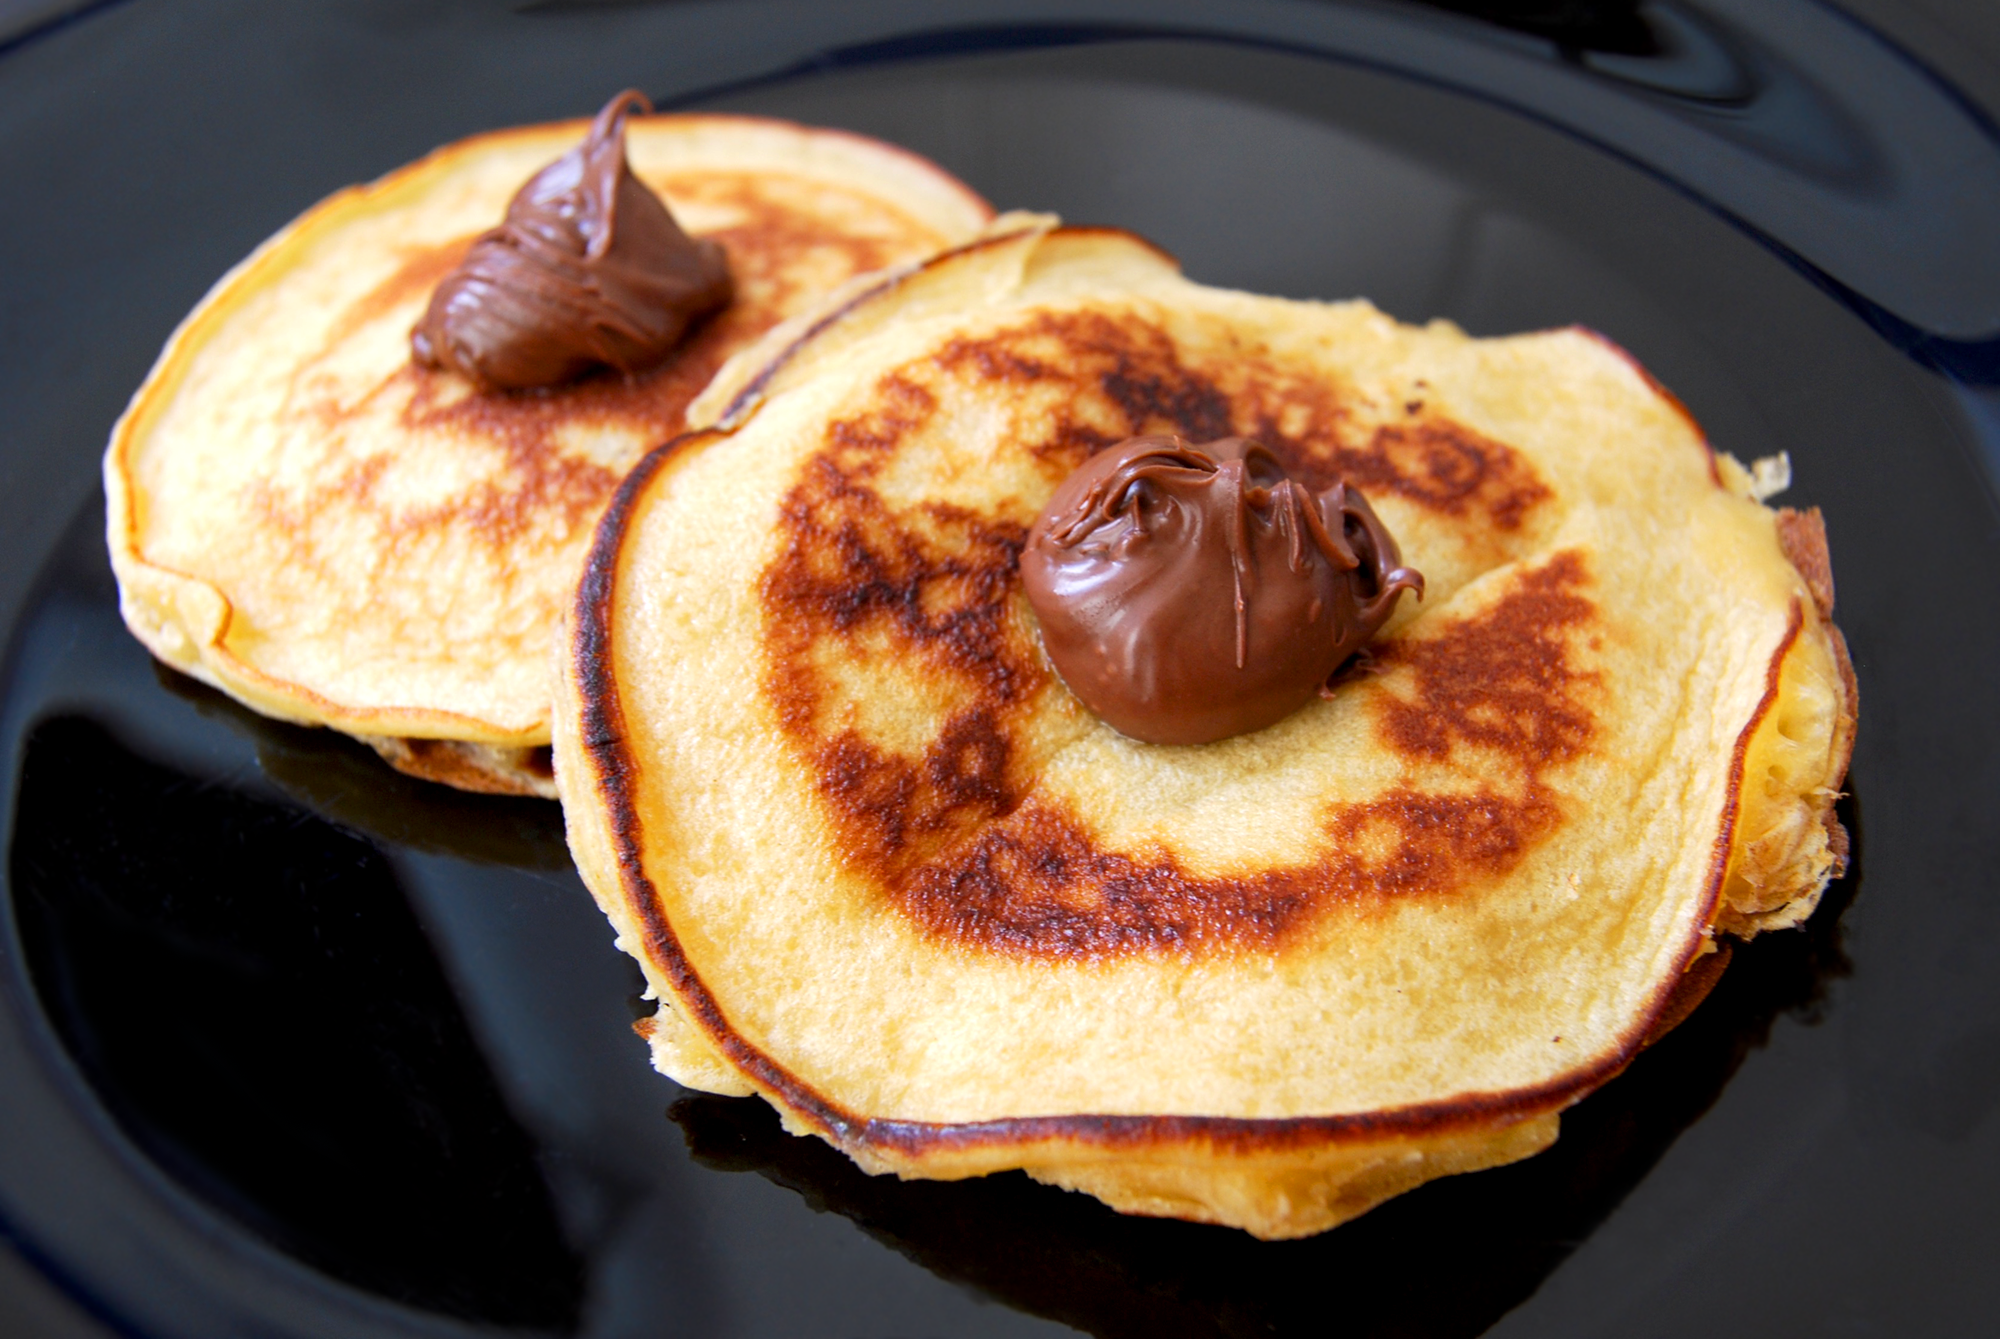 American Pancake filled with Nutella